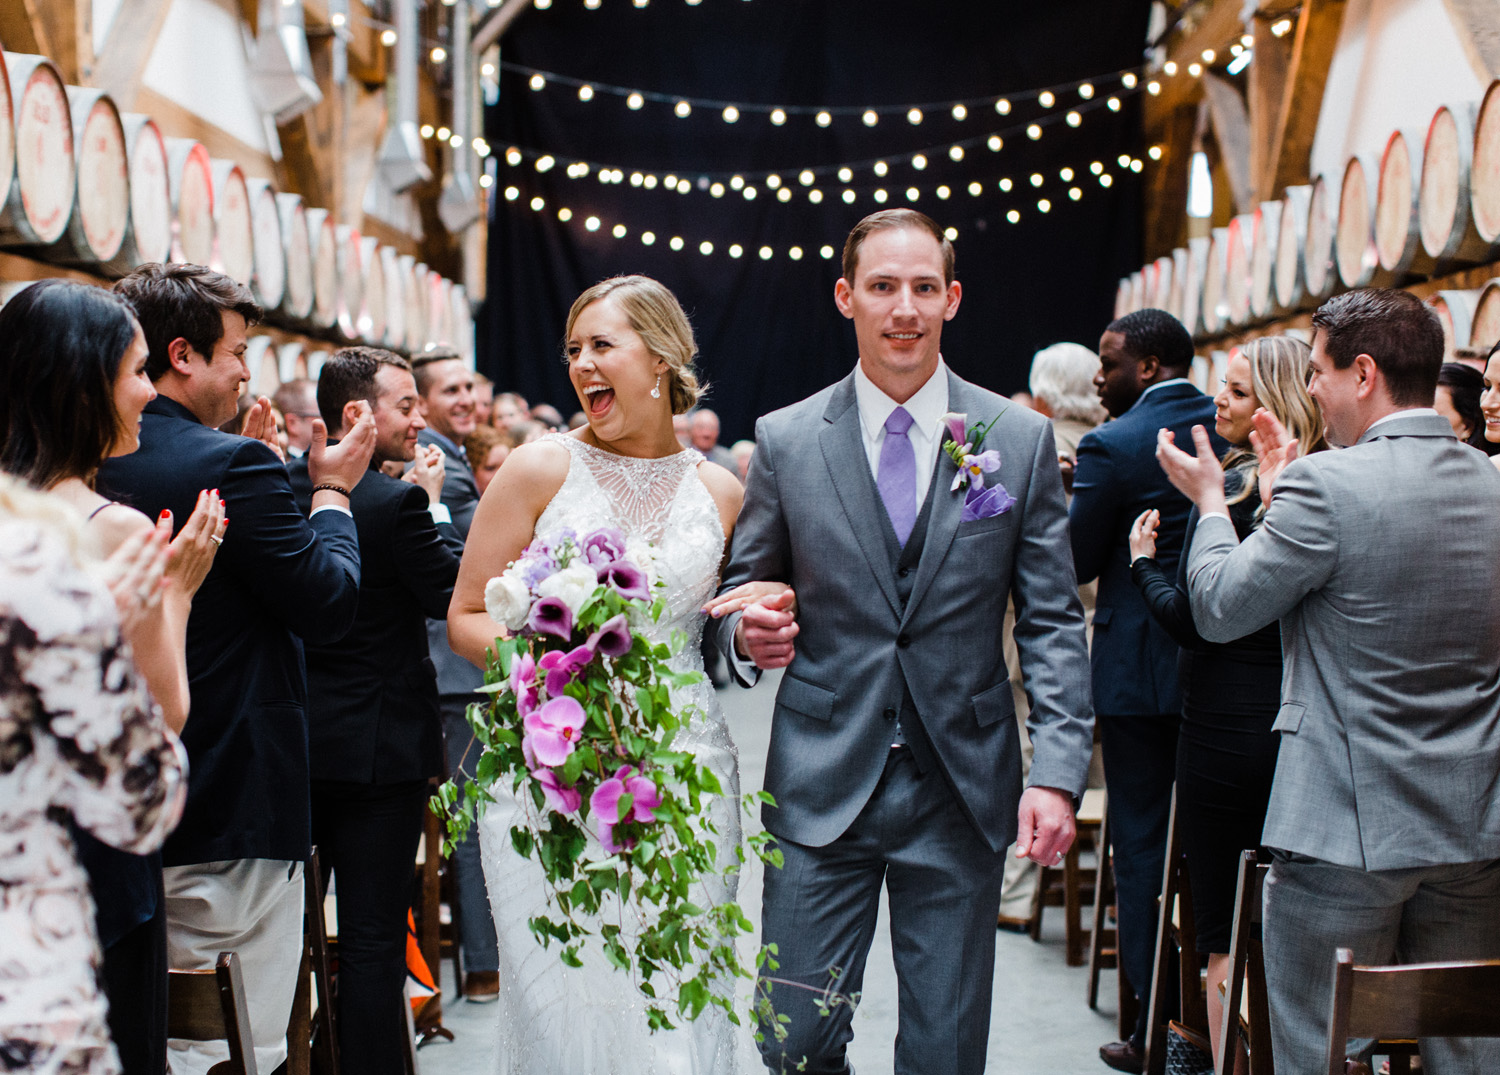 Couple After their ceremony at Westland Distillery Indoor Wedding Venue by Alexandra Knight Photography Seattle Wedding Photographer